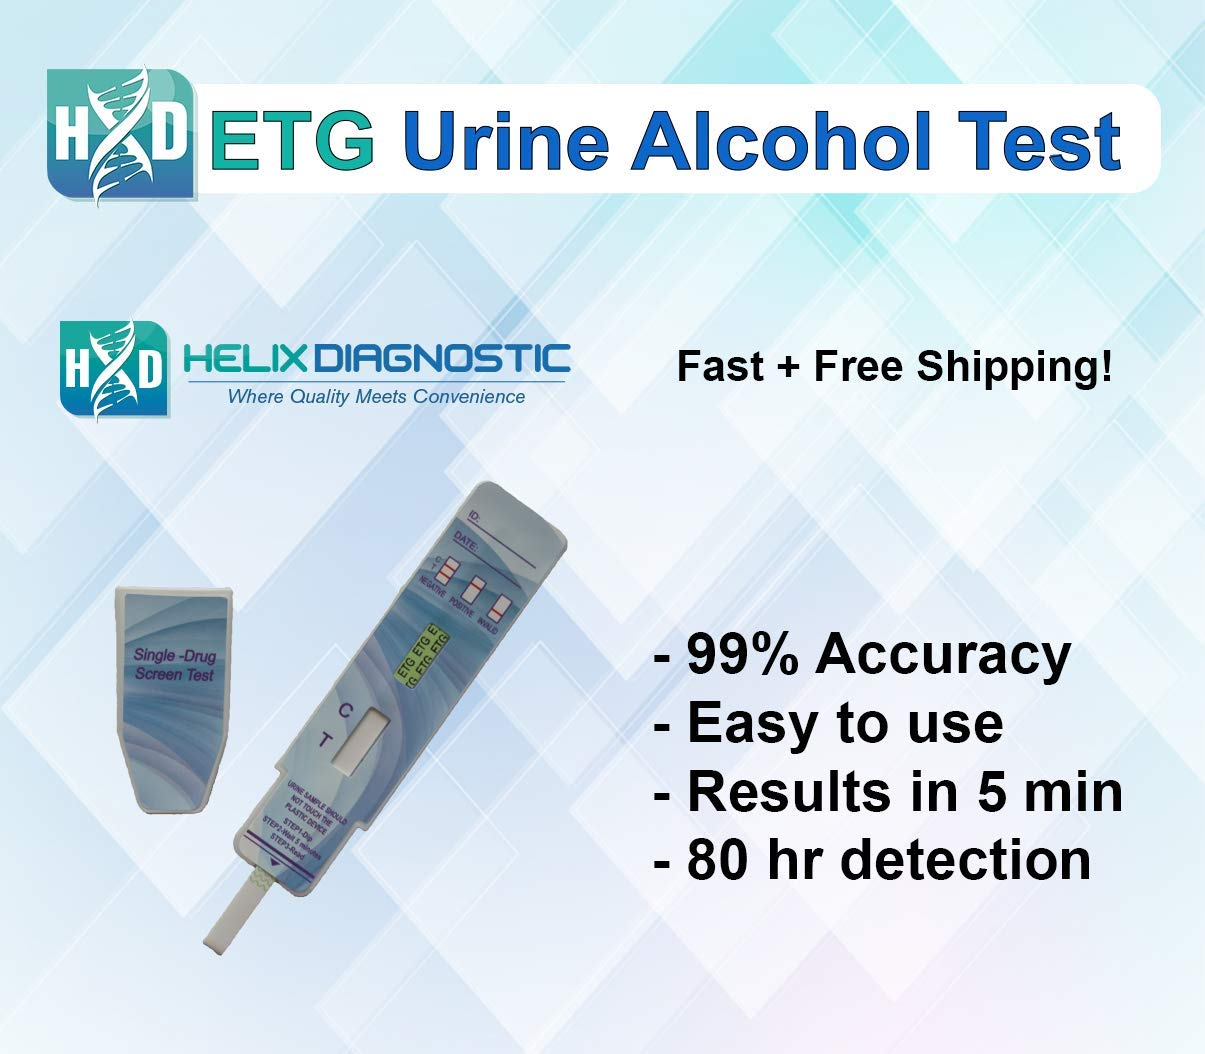 ETG Urine Alcohol Test - at Home Alcohol Urine Dip Detects 80 hrs (5Pack)  New Product Launch Sale